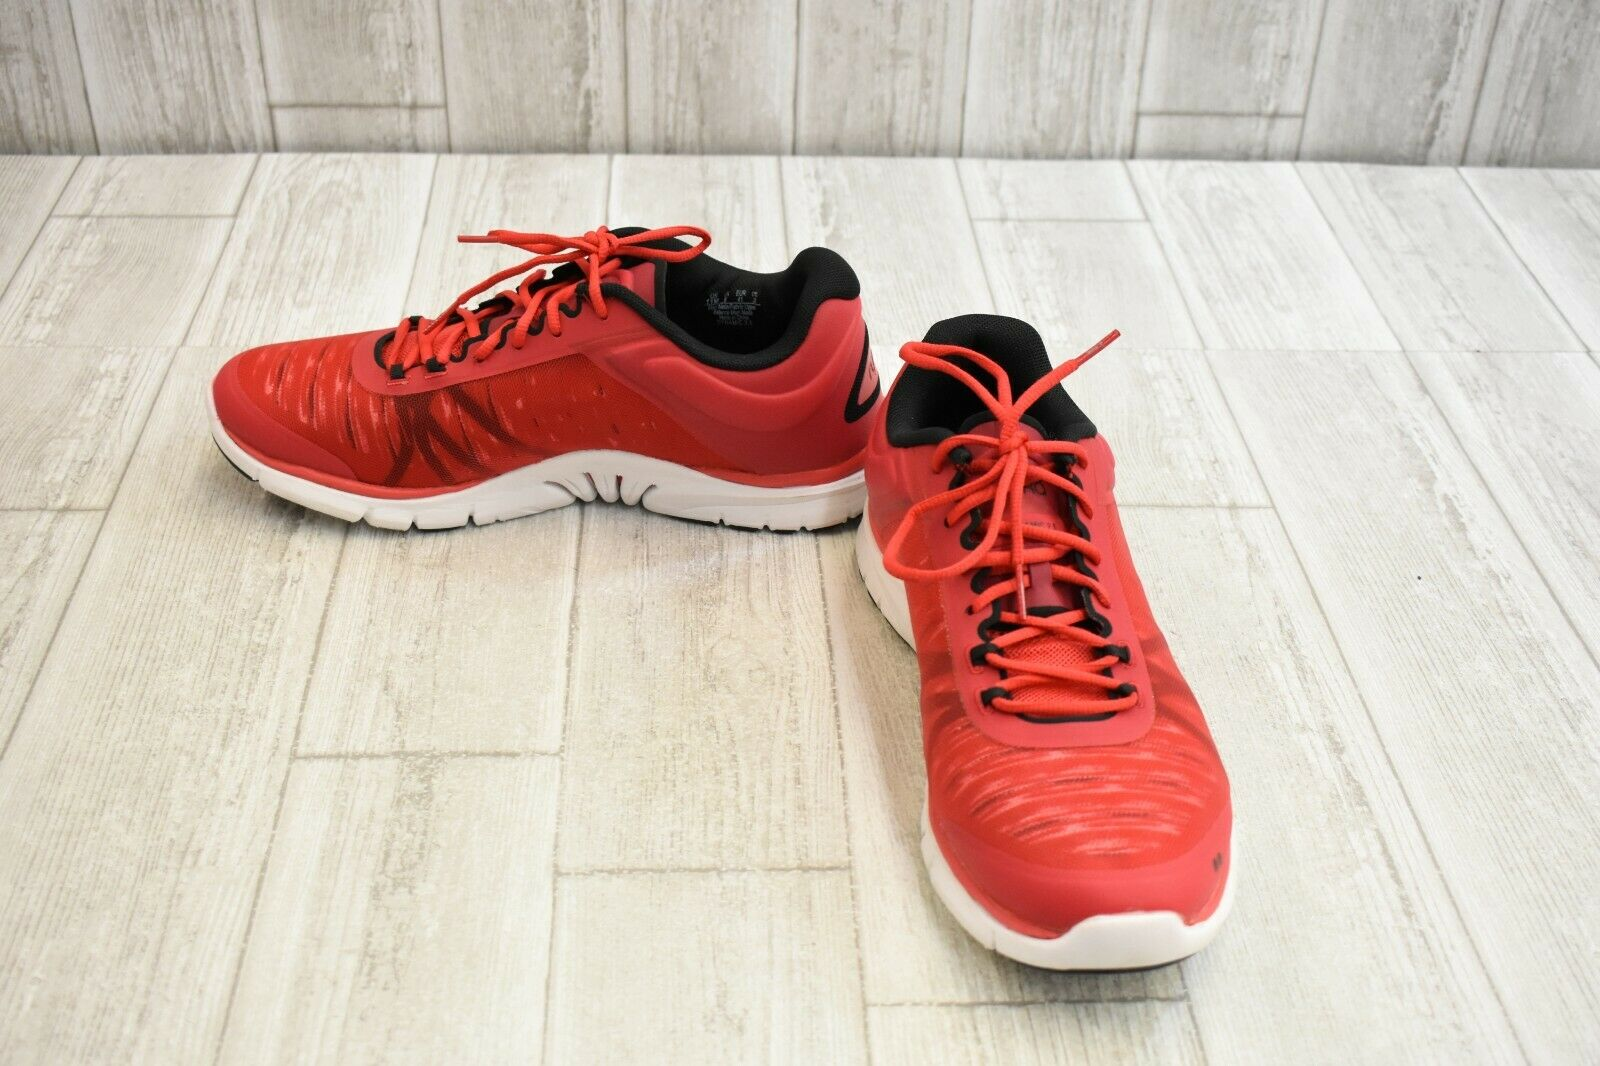 Ryka Dynamic 2.5 Training shoes - Women's Size 11 M - Red